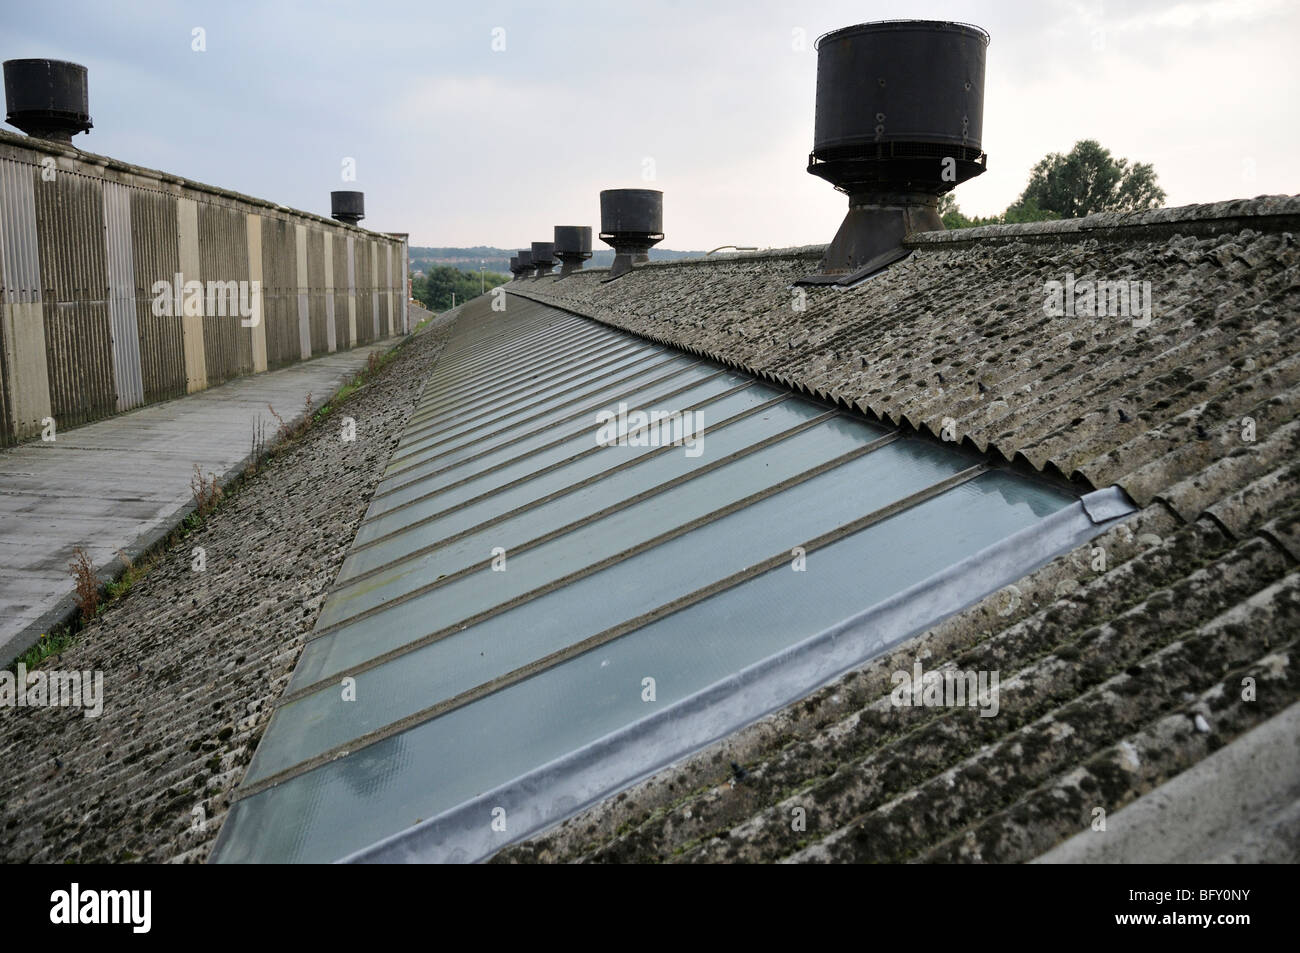 Long Factory Roof Made Of Asbestos Cement Sheeting Showing Roof Vents And  Glass Panels